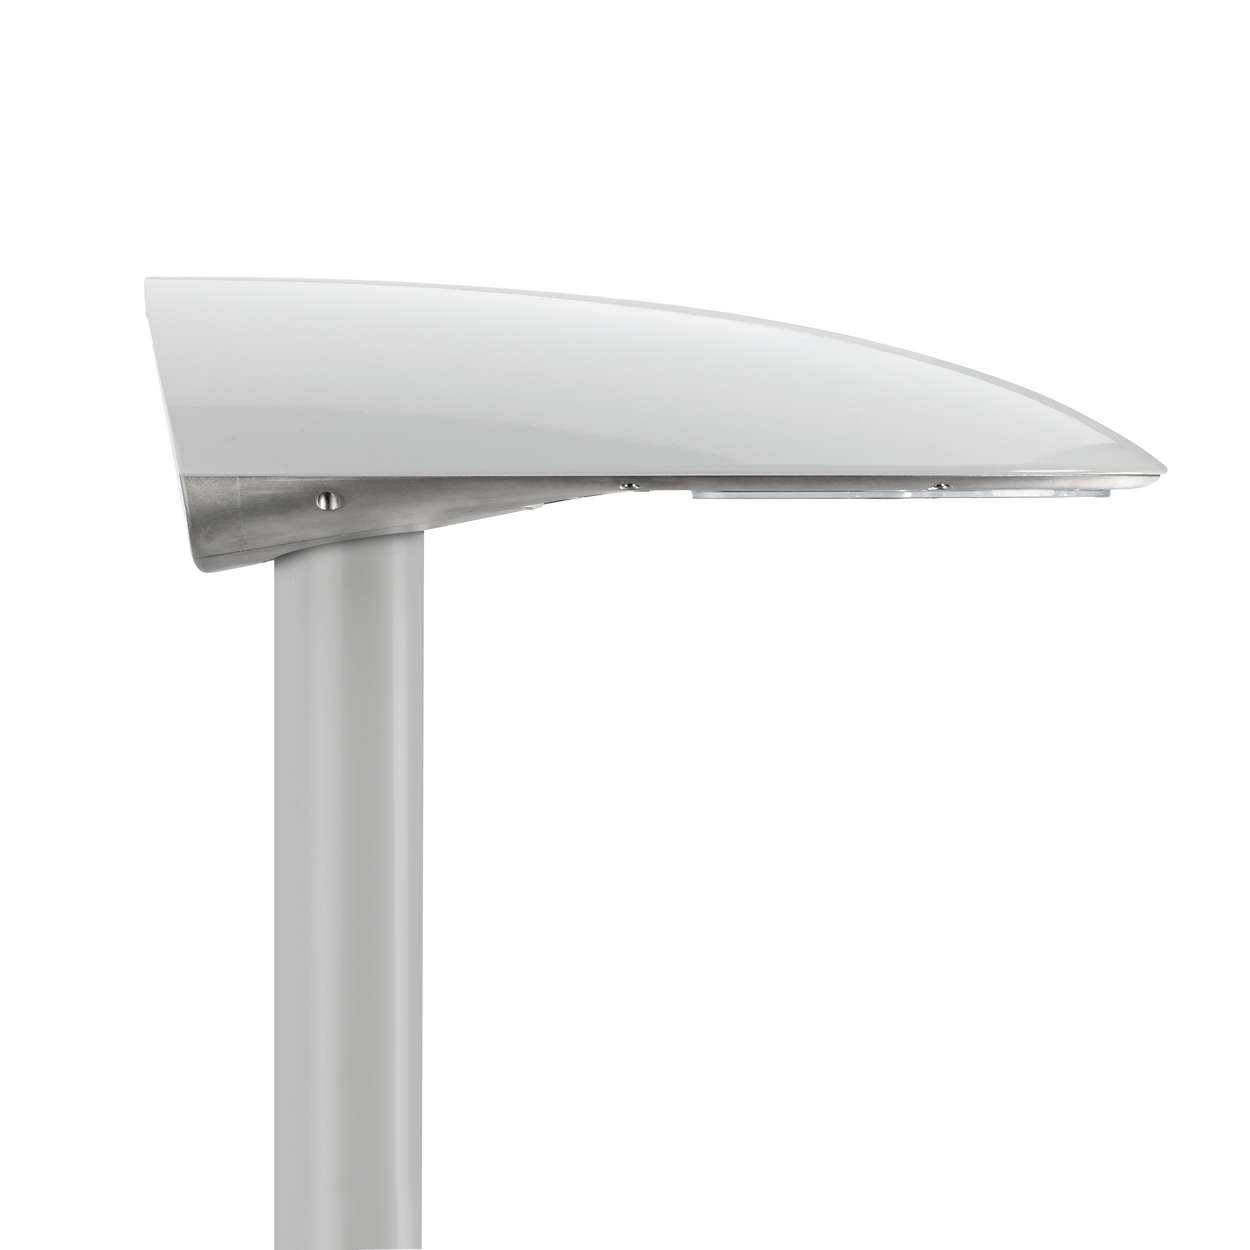 Iridium 3 LED – Le luminaire d'éclairage fonctionnel routier intelligent connecté « Plug & play »